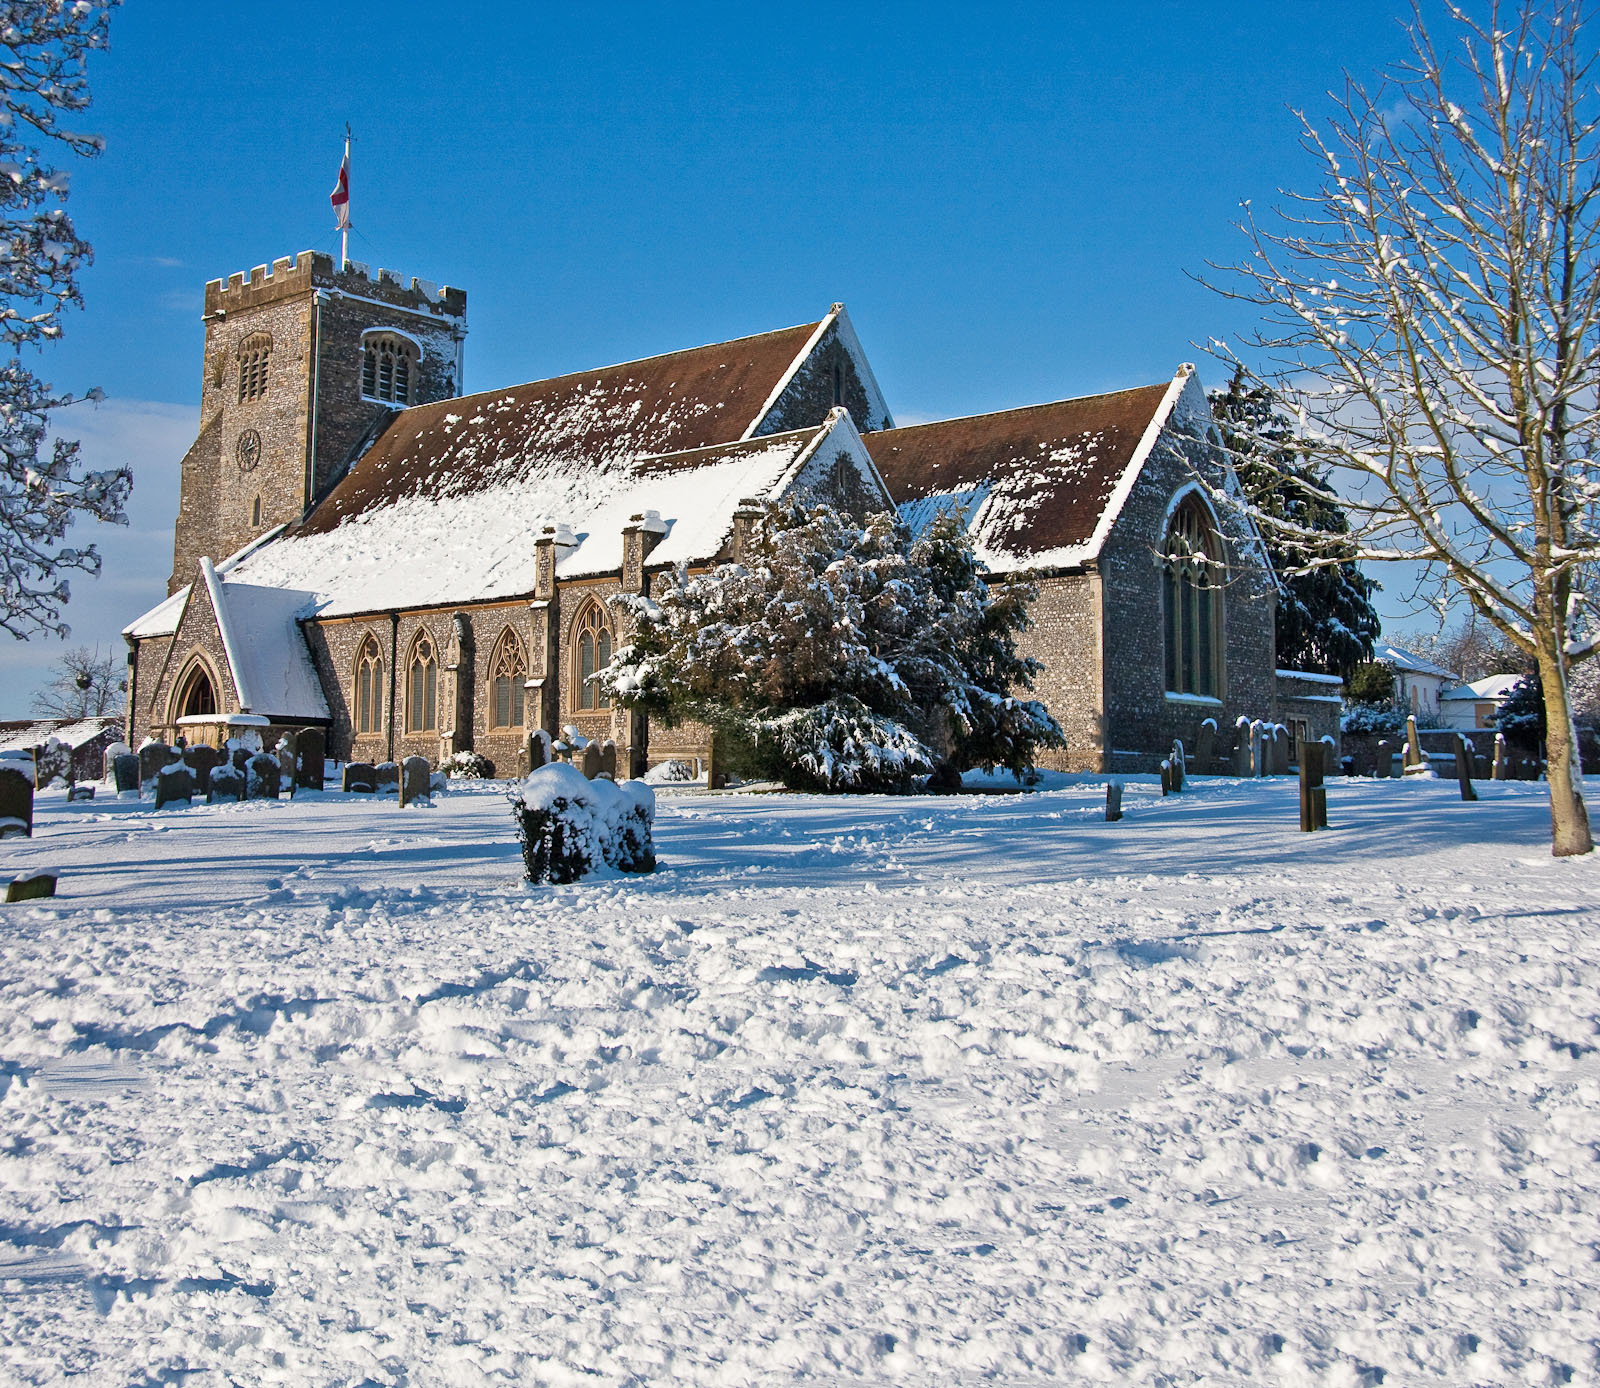 Church of England parish church of St Mary in Thatcham during a heavy snowfall.